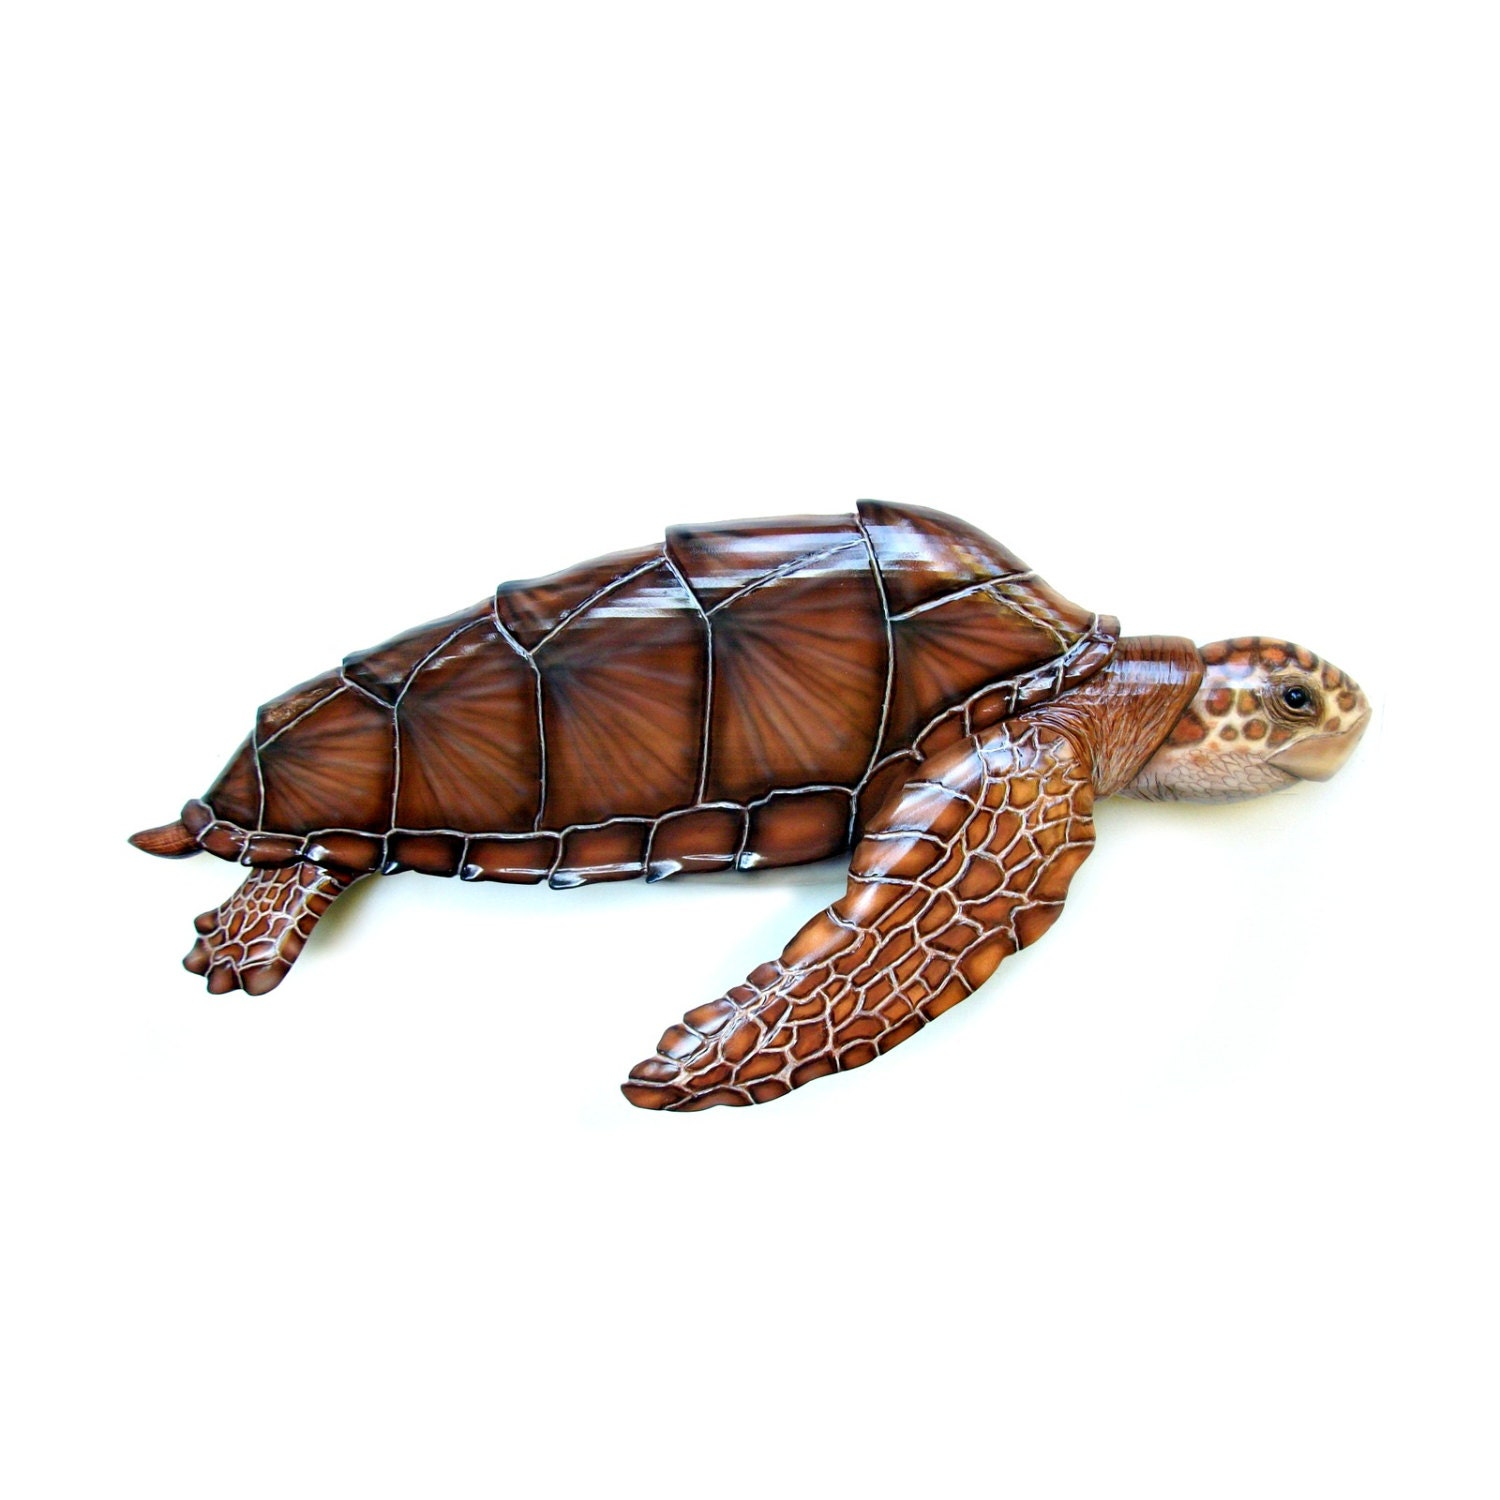 Loggerhead sea turtle  wood carving art